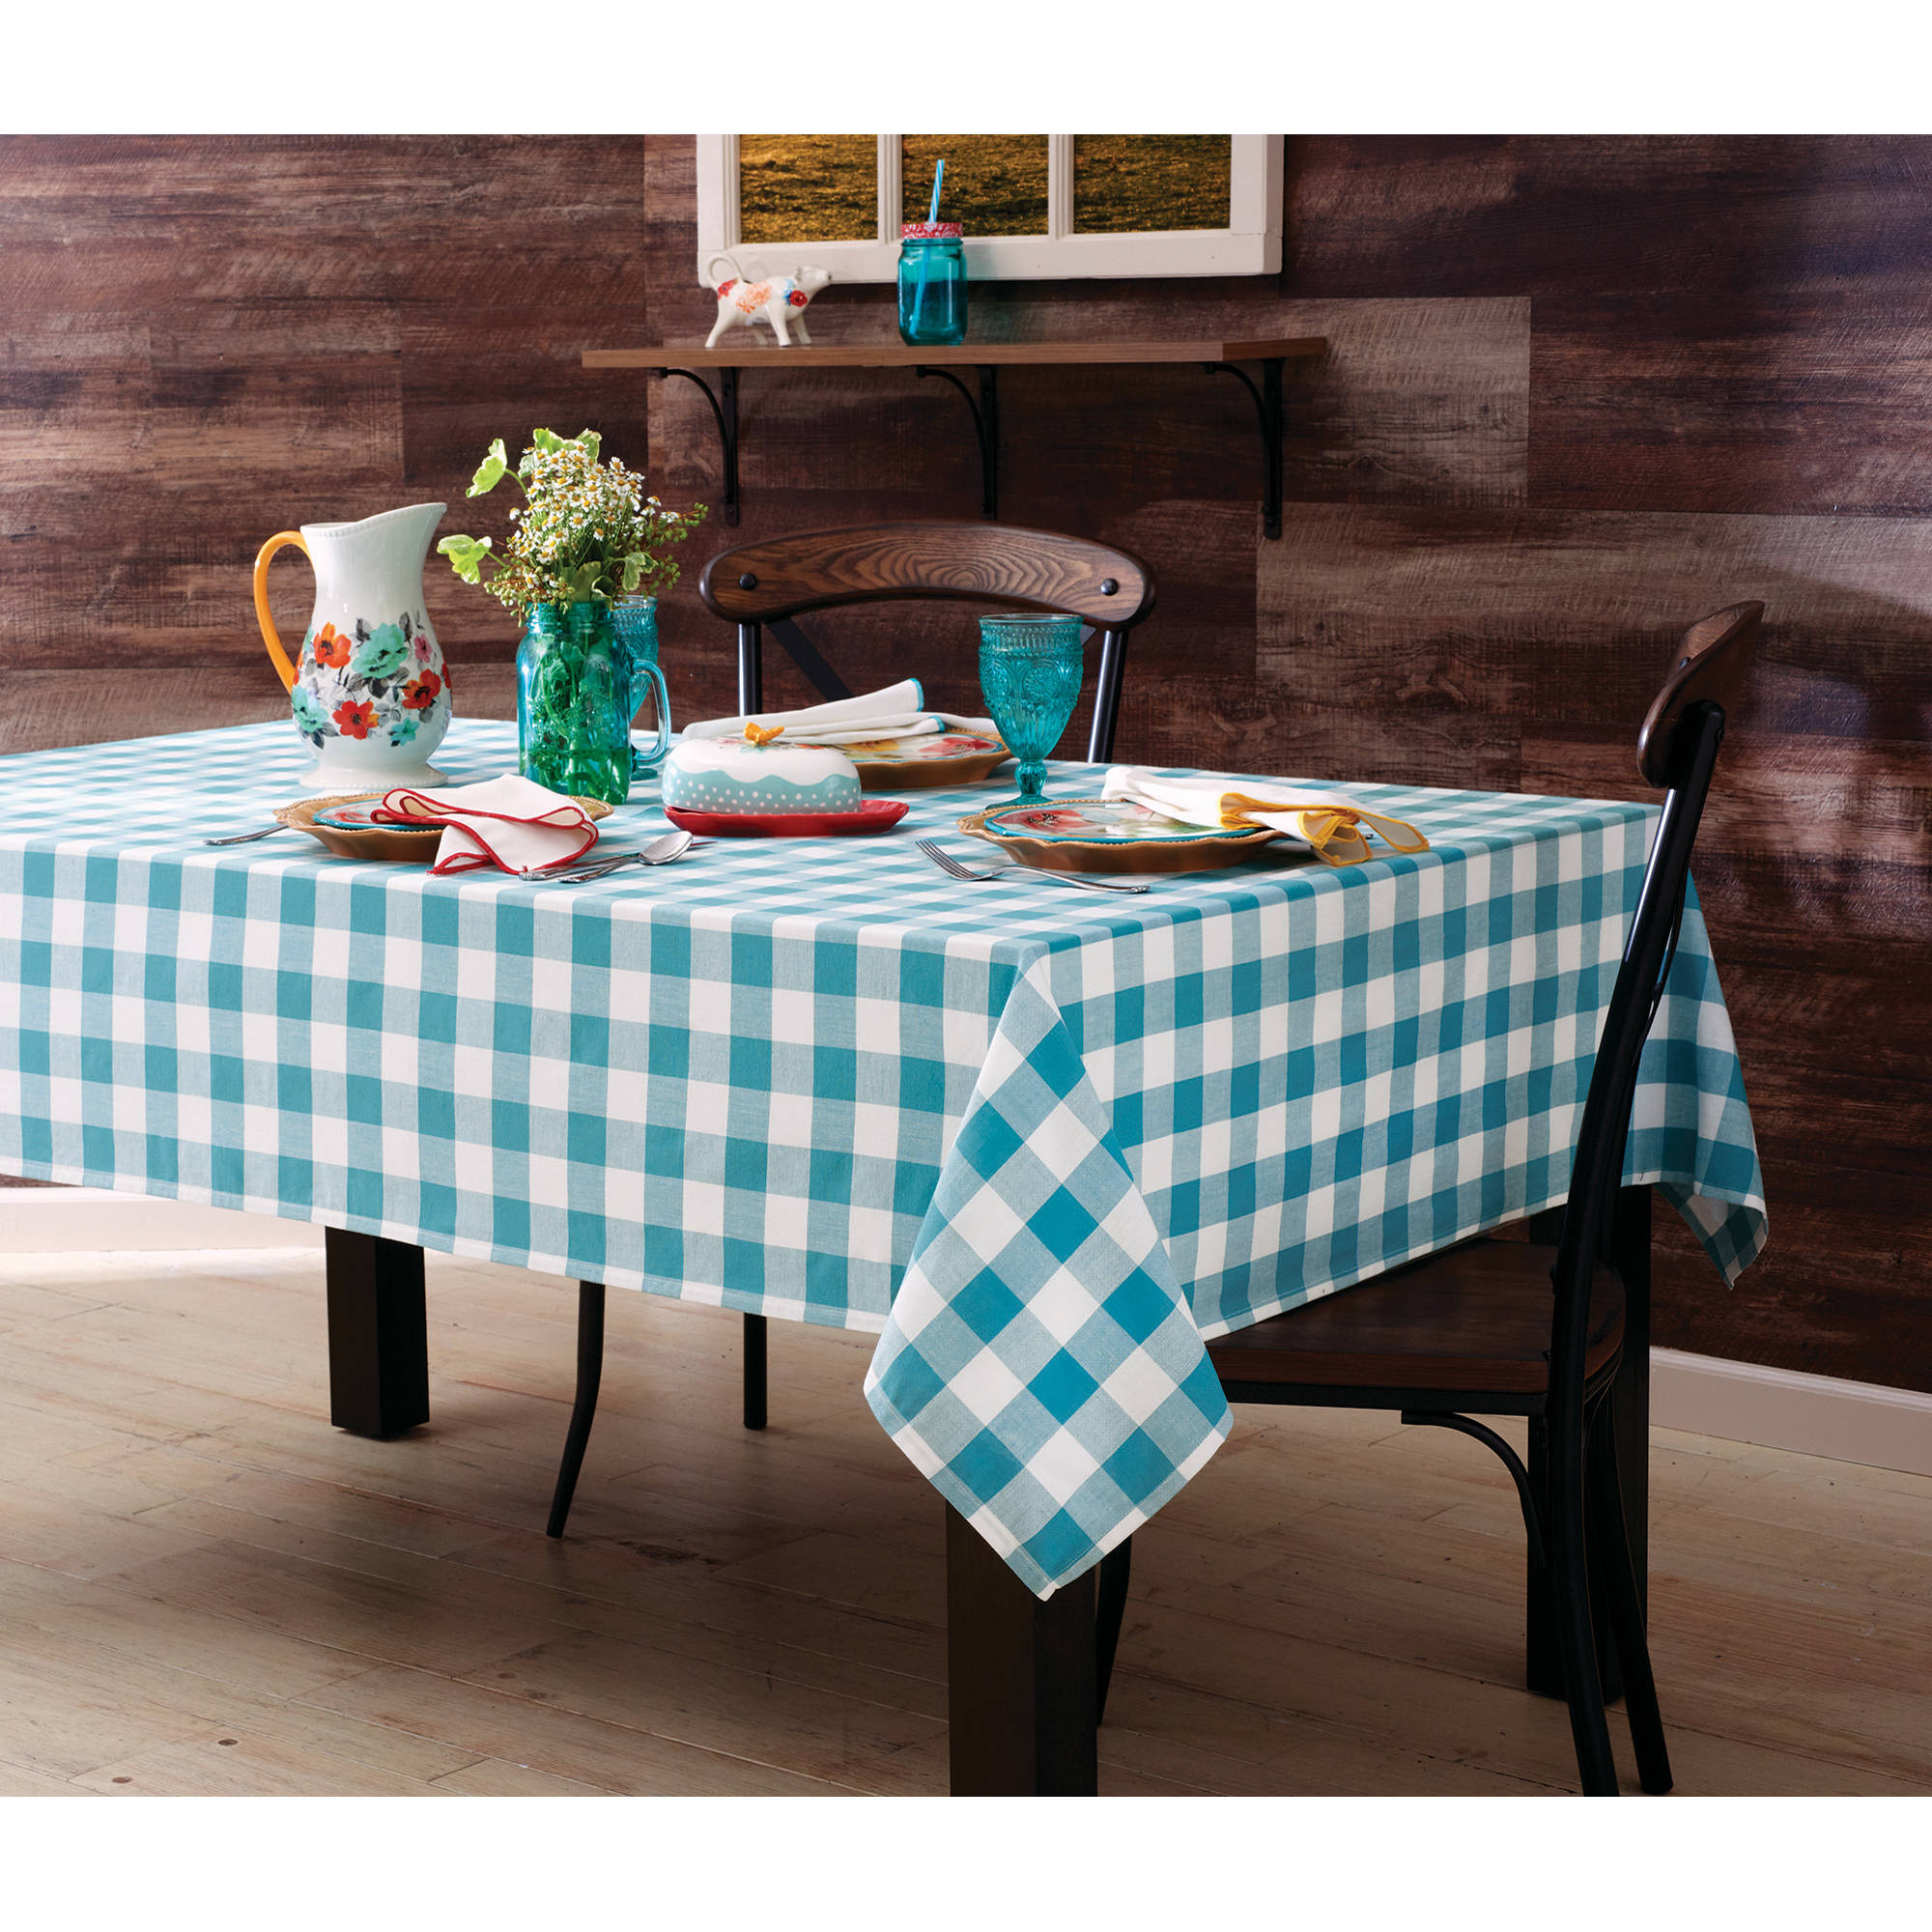 The Pioneer Woman Charming Check Tablecloth, Teal, Available in ...